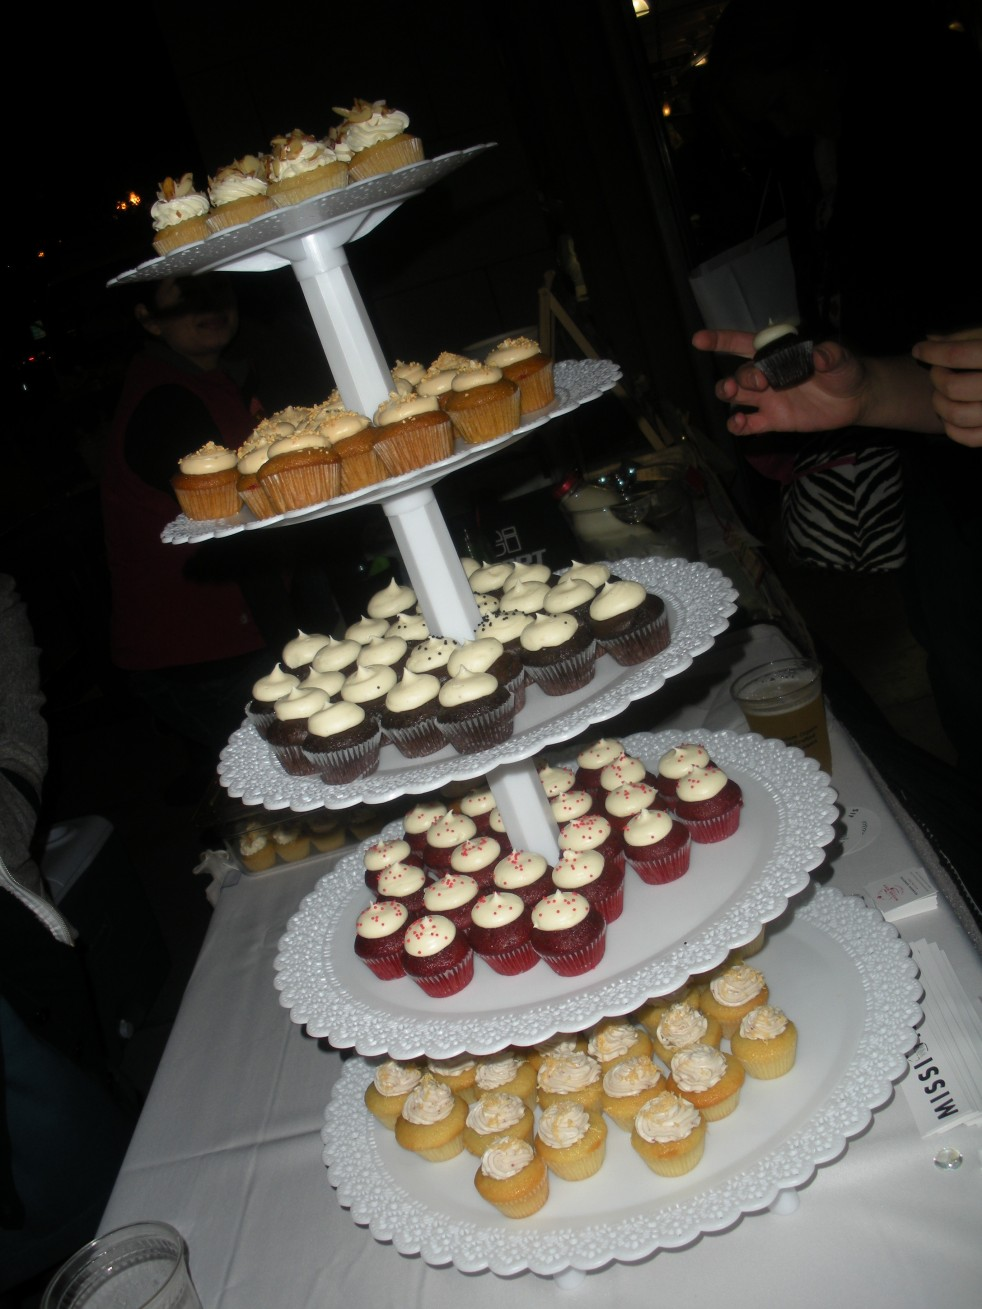 Mission minis cupcakes-Duo Dishes